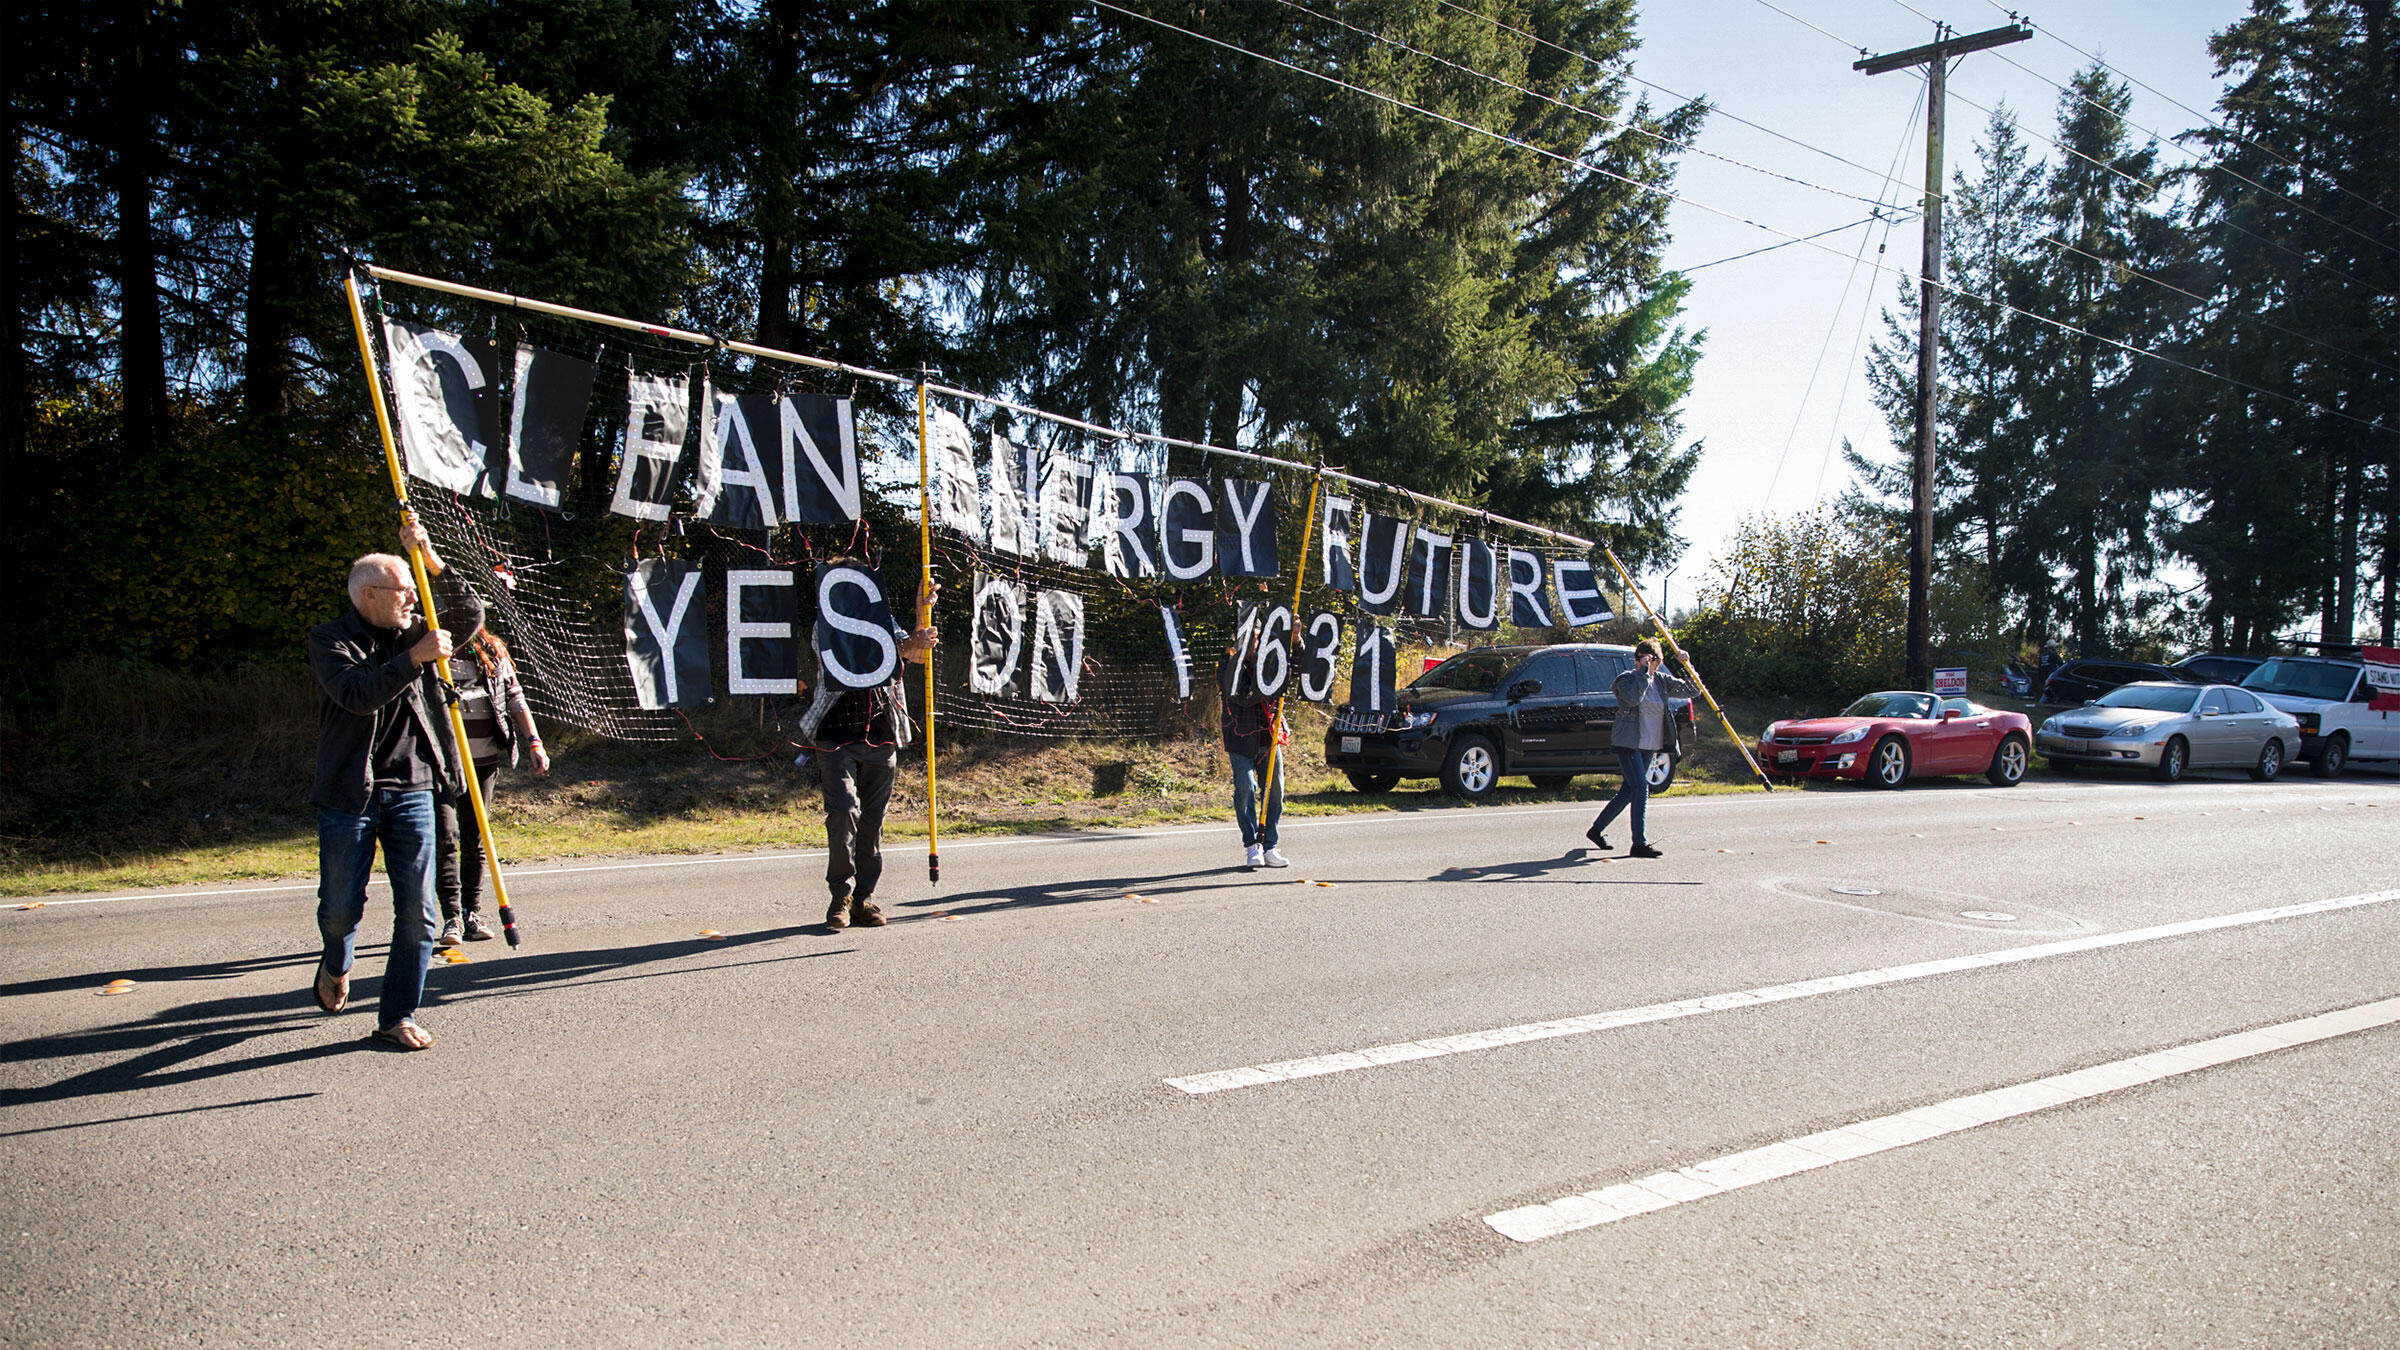 Campaign signage seen walking across the street in front of Western States Petroleum Association building during I-1631 rally in Lacey, Washington, Oct. 17, 2018. Matt M. McKnight/Cascade Public Media 2018